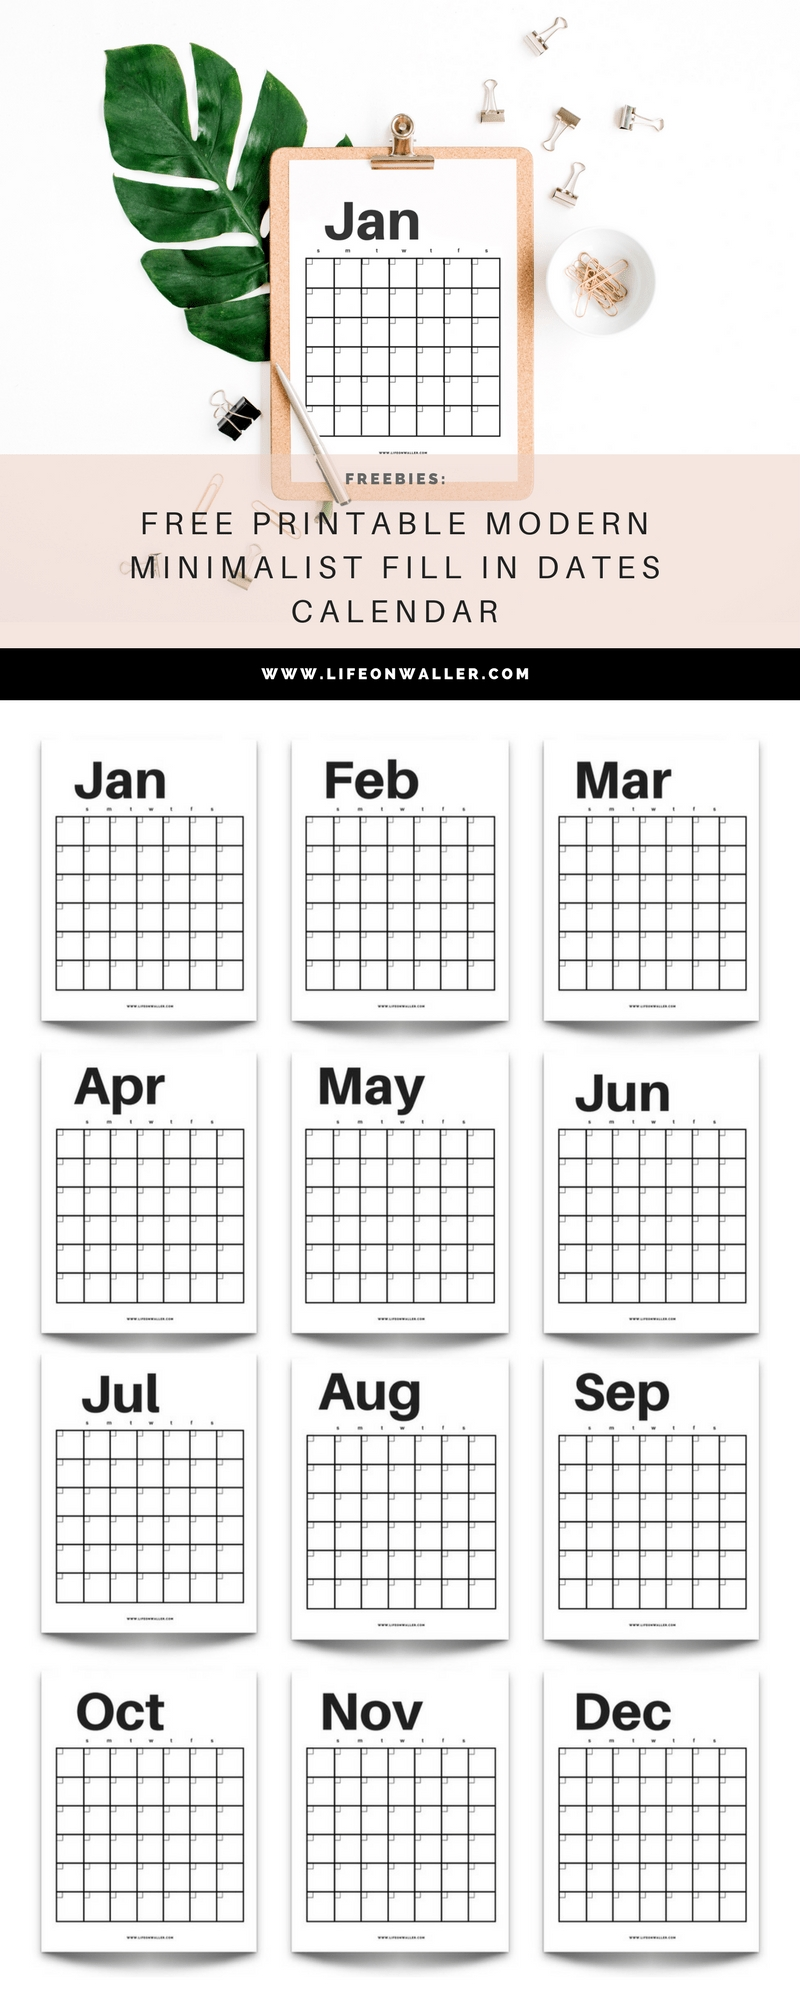 Free Printable Modern Minimalist Fill In Calendar - Use For Any Year - Cassie Scroggins-Free Fill In Printable Calendar